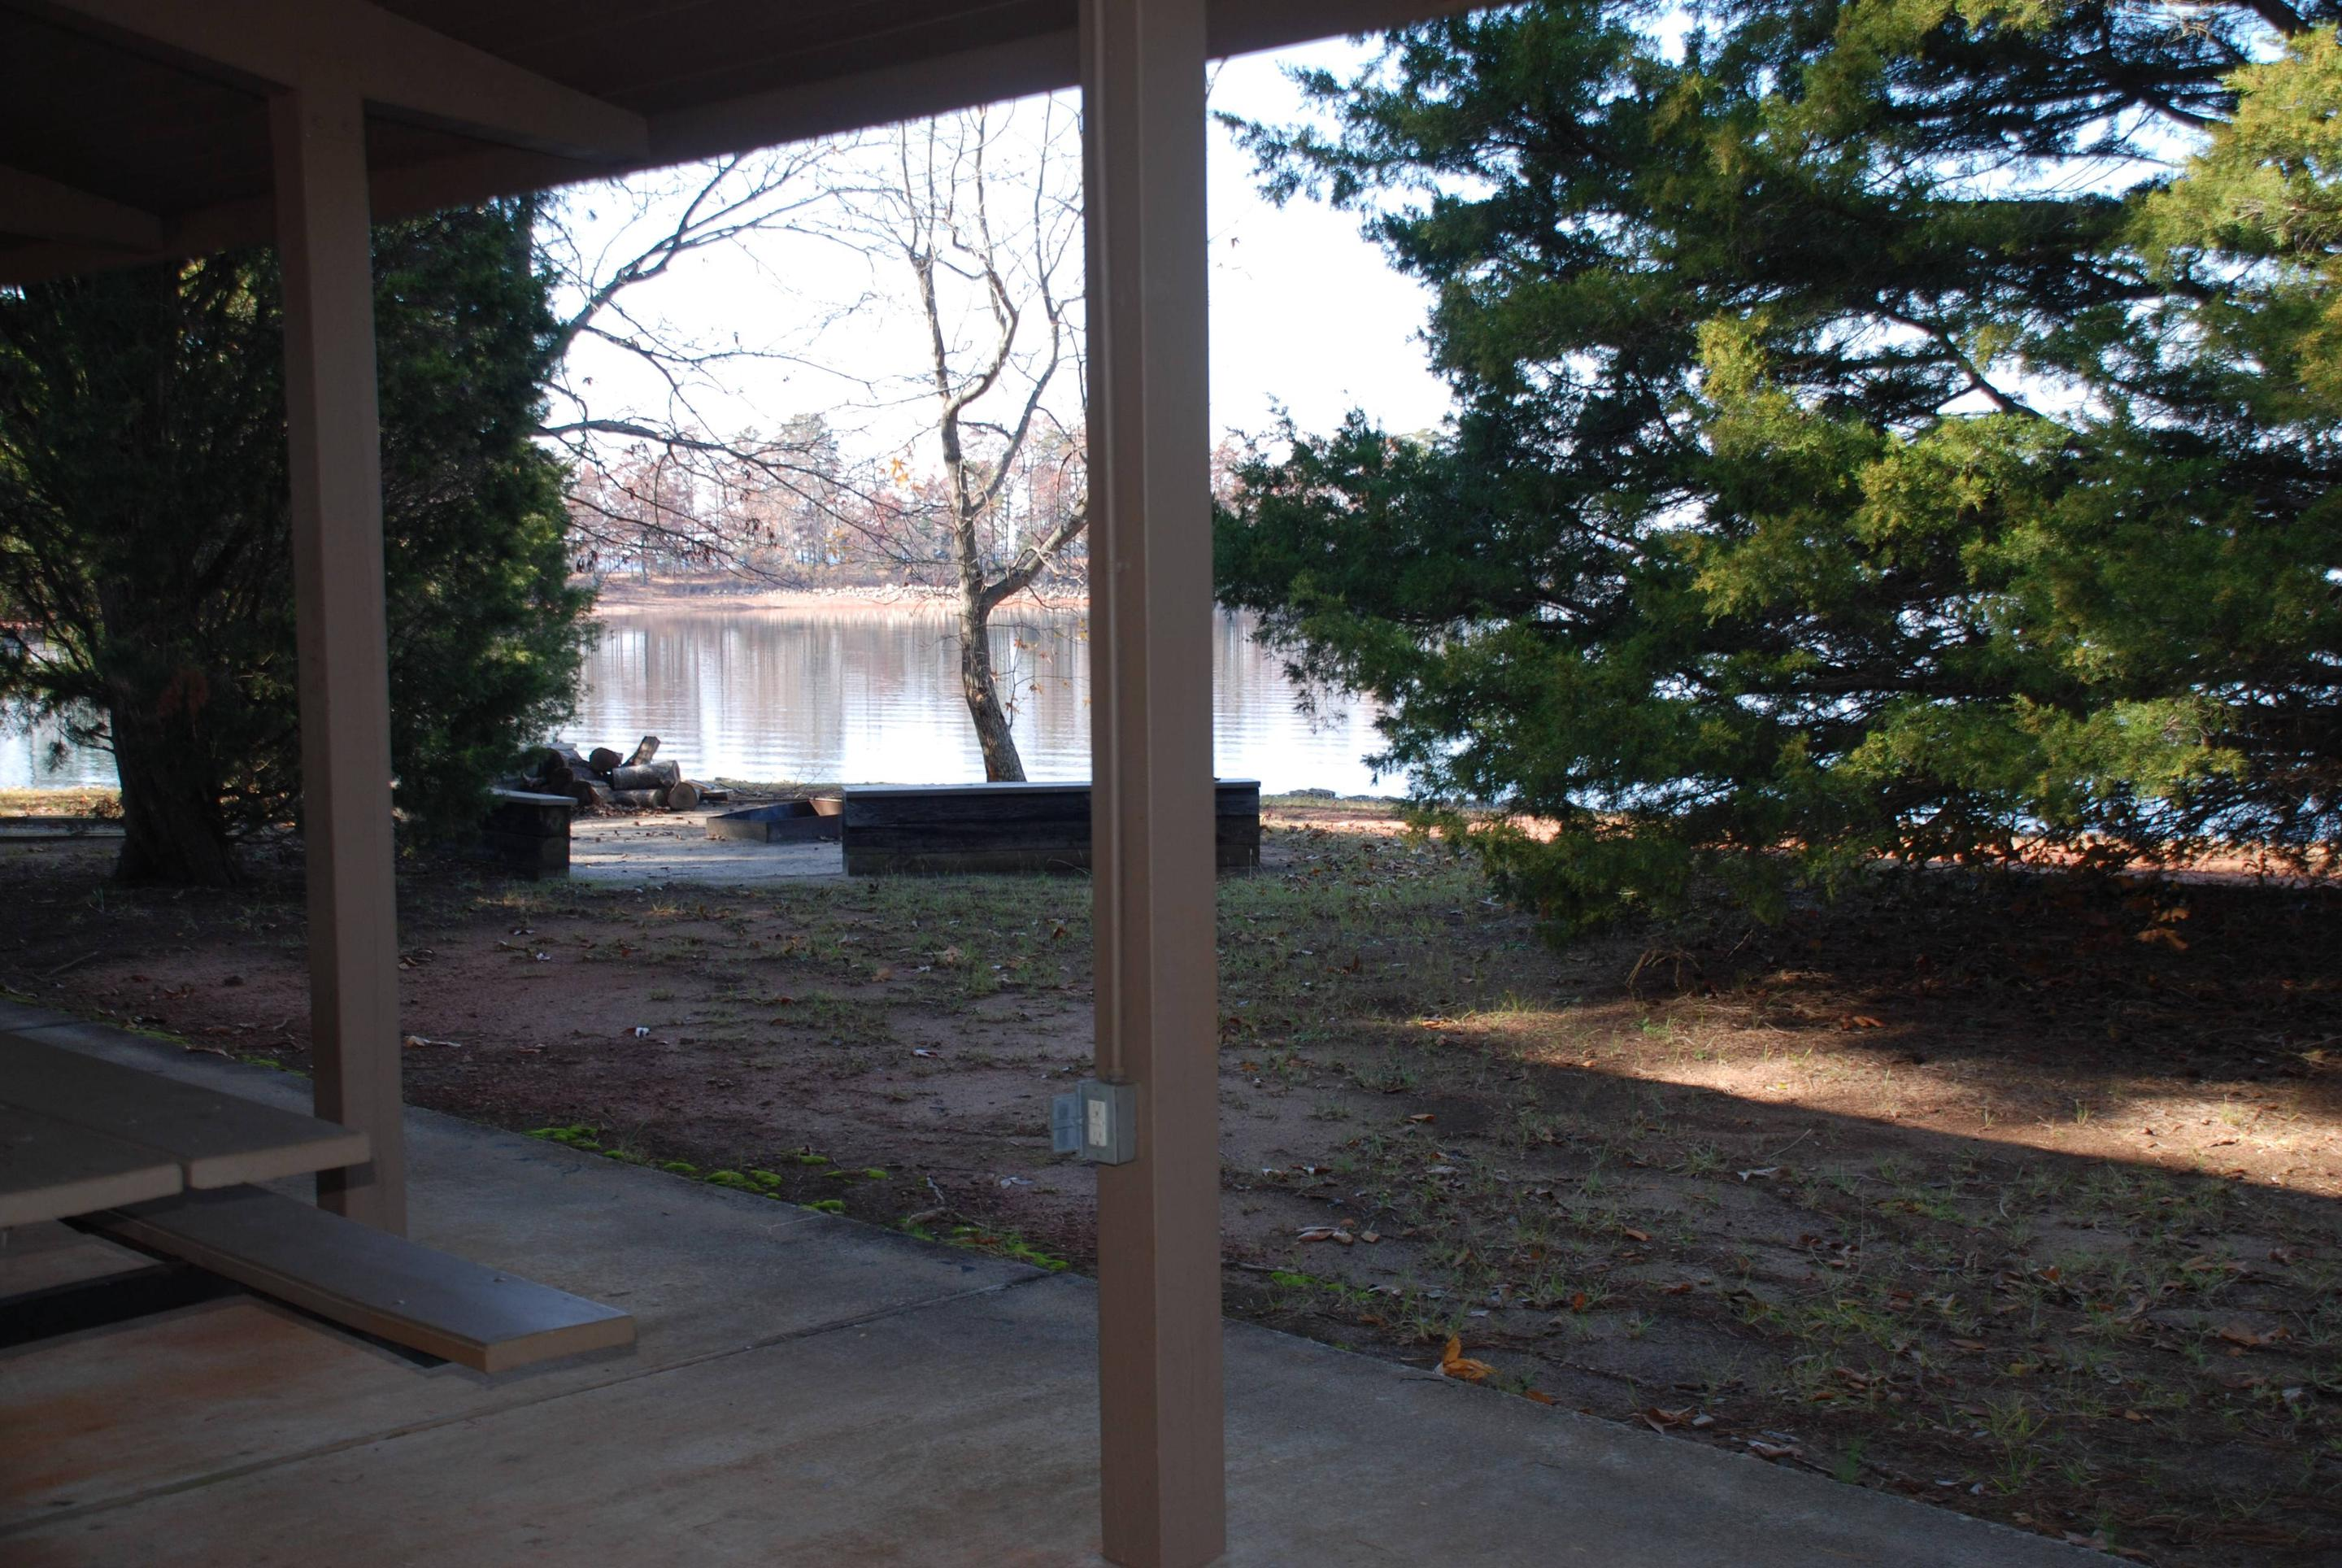 VIEW FROM A PICNIC SHELTER